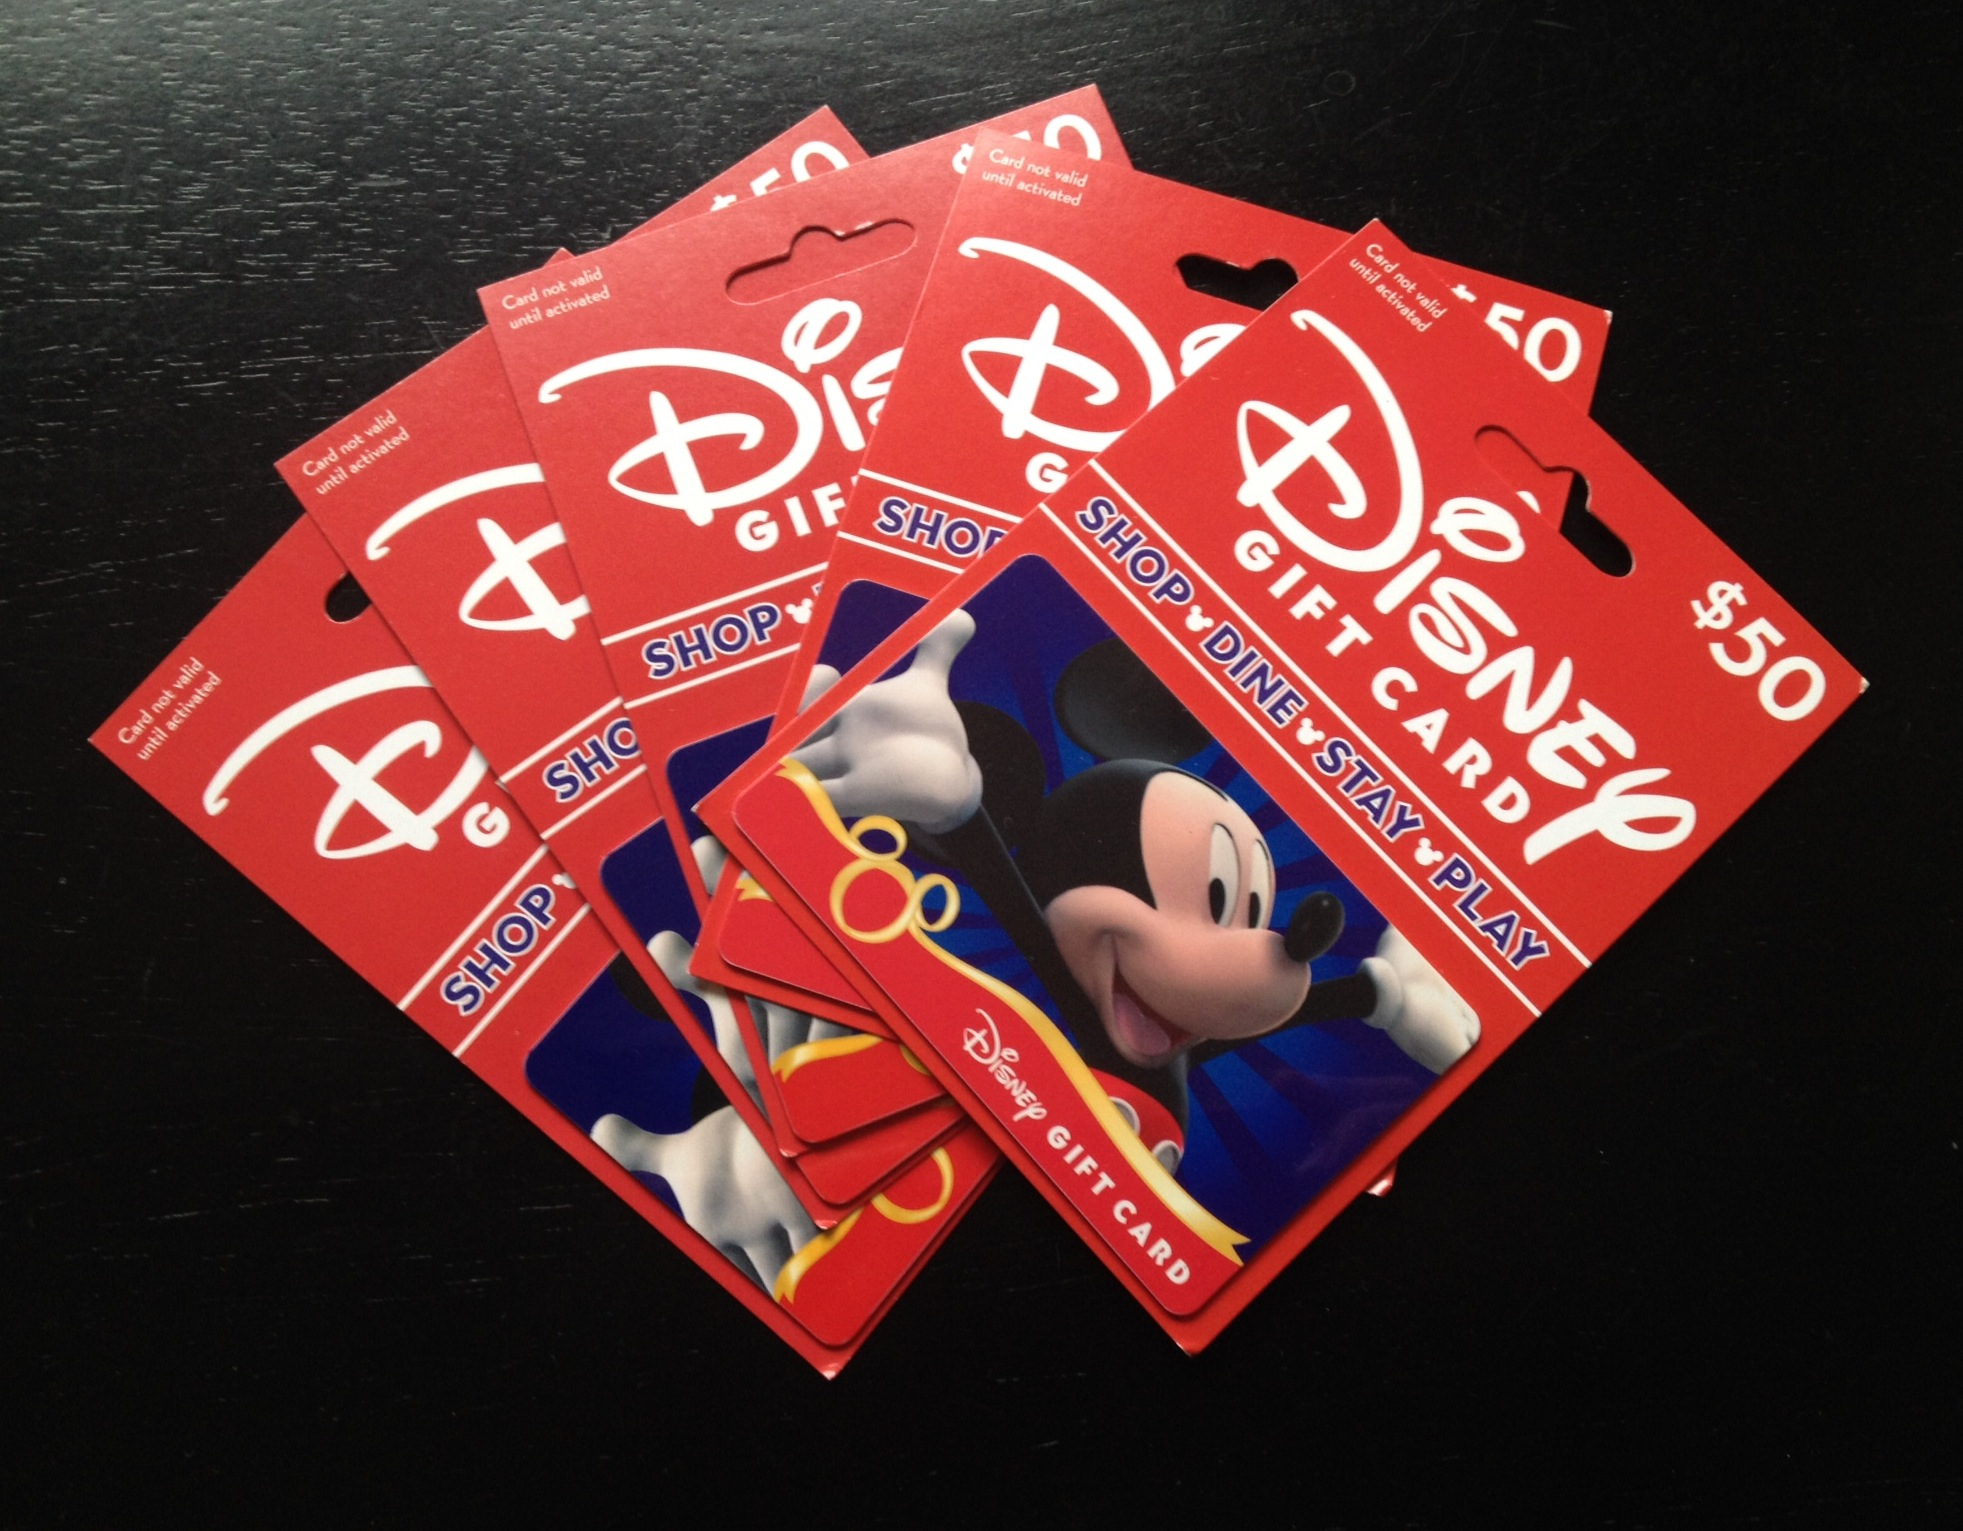 Can I Pay For My Entire Reservation With Disney Gift Cards?